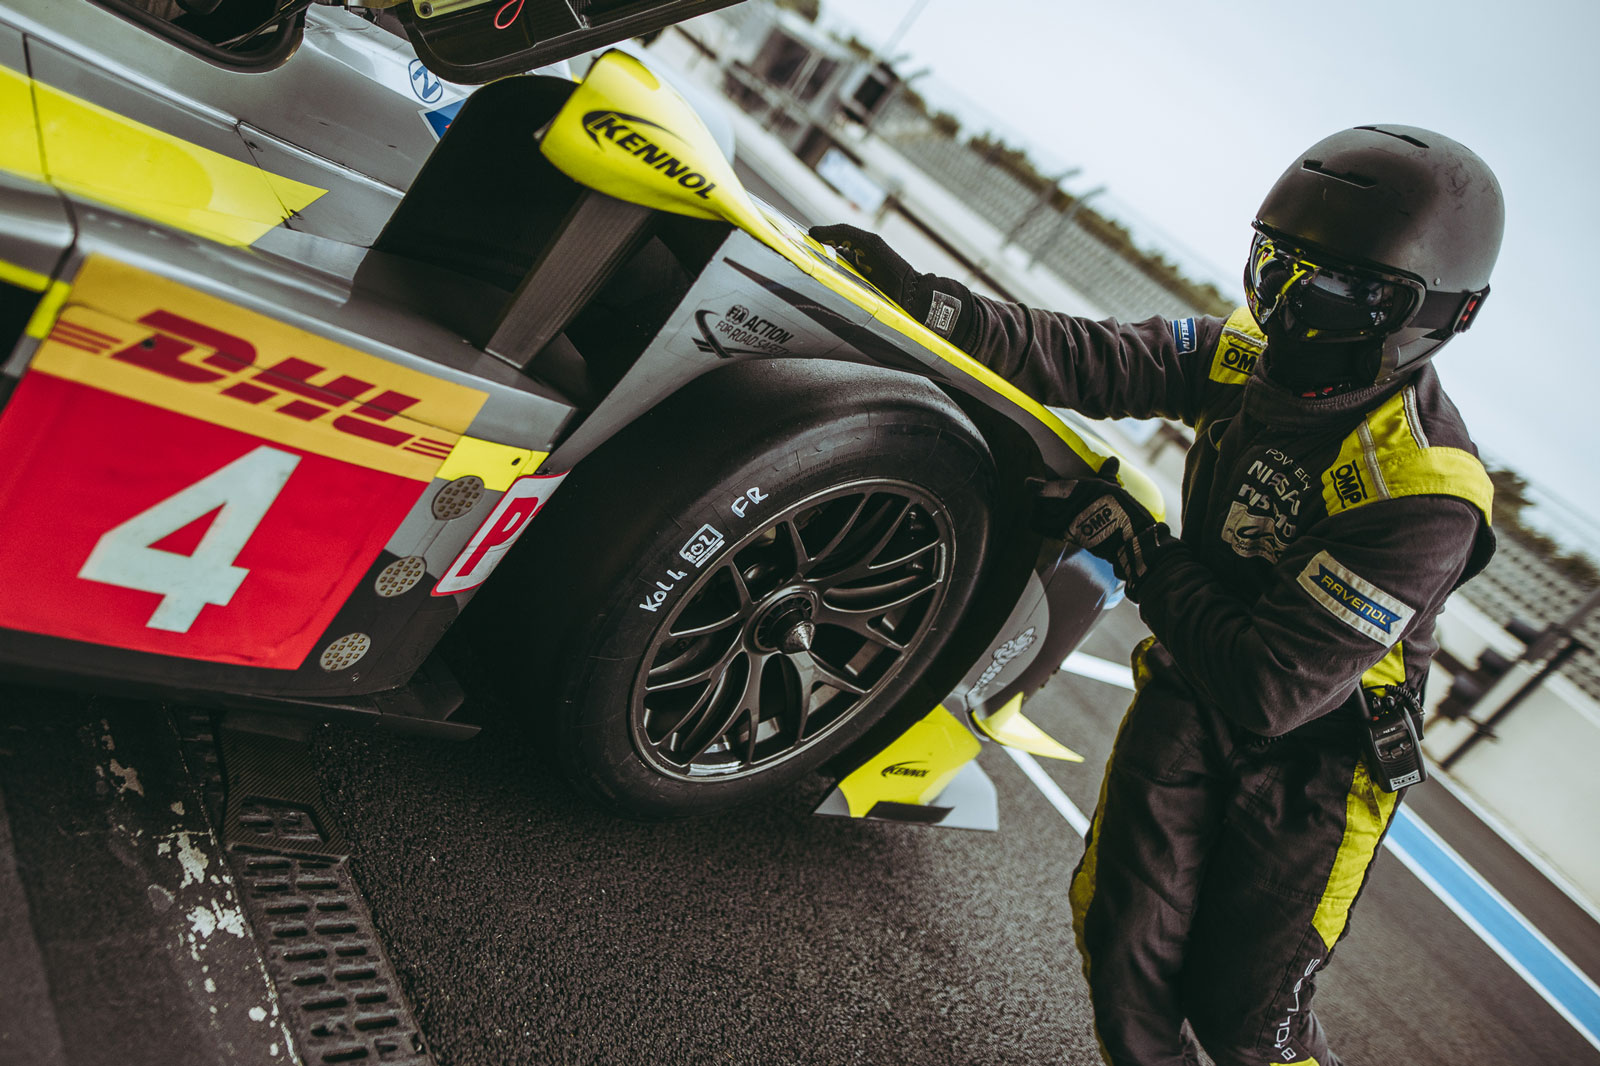 ByKOLLES Racing completes its pre-superseason testing program in Monza and heads to season opener in Belgium